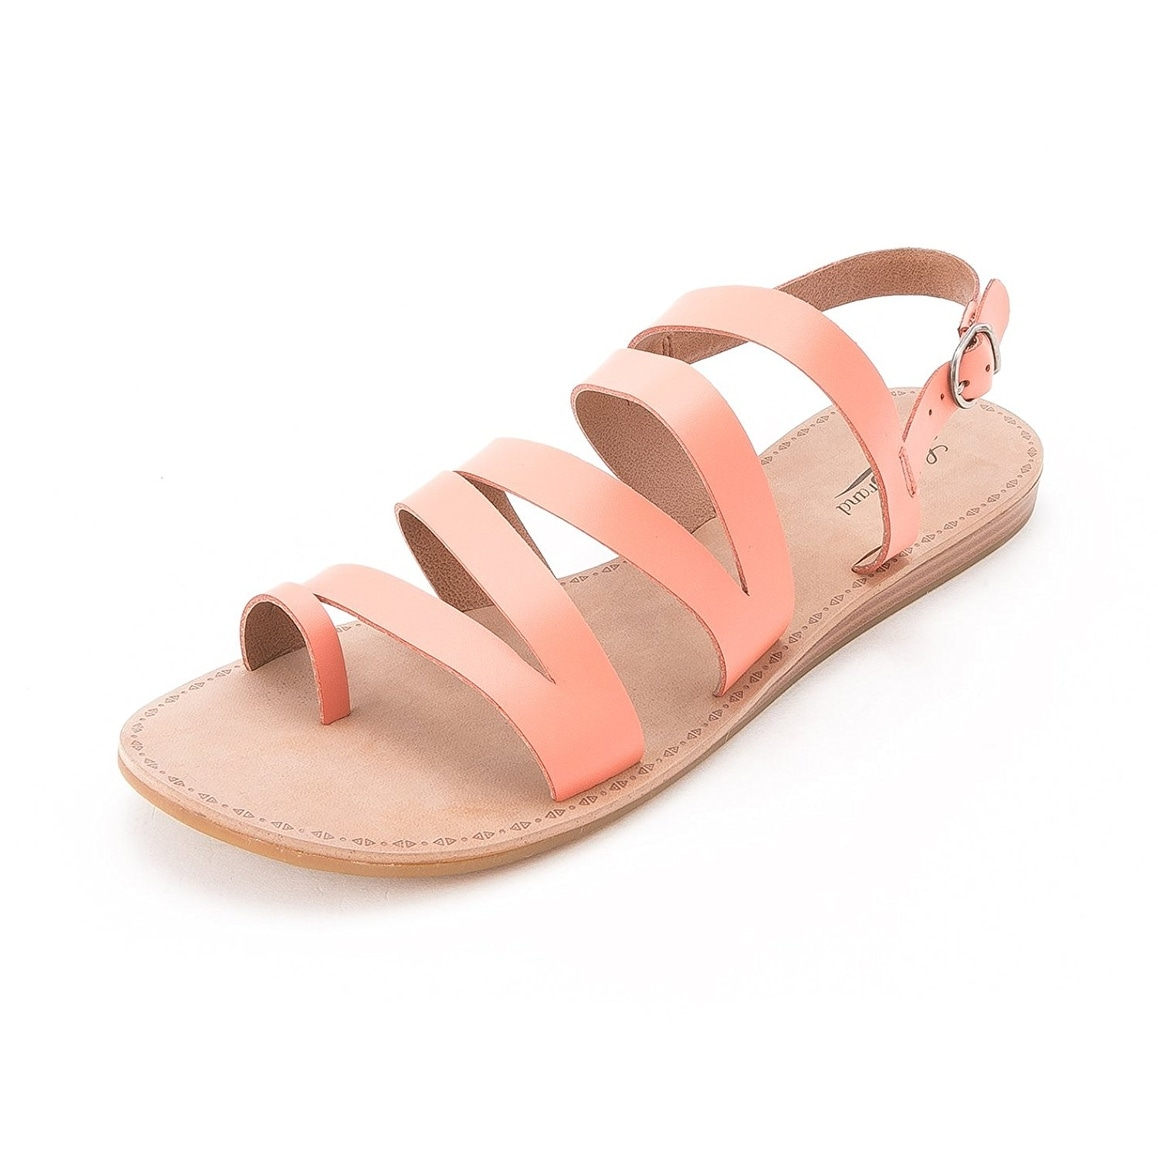 e4e6984ade9 Shop Lucky Brand Womens FAIRFAXX Leather Split Toe Casual Gladiator Sandals  - Free Shipping On Orders Over  45 - Overstock - 16107901